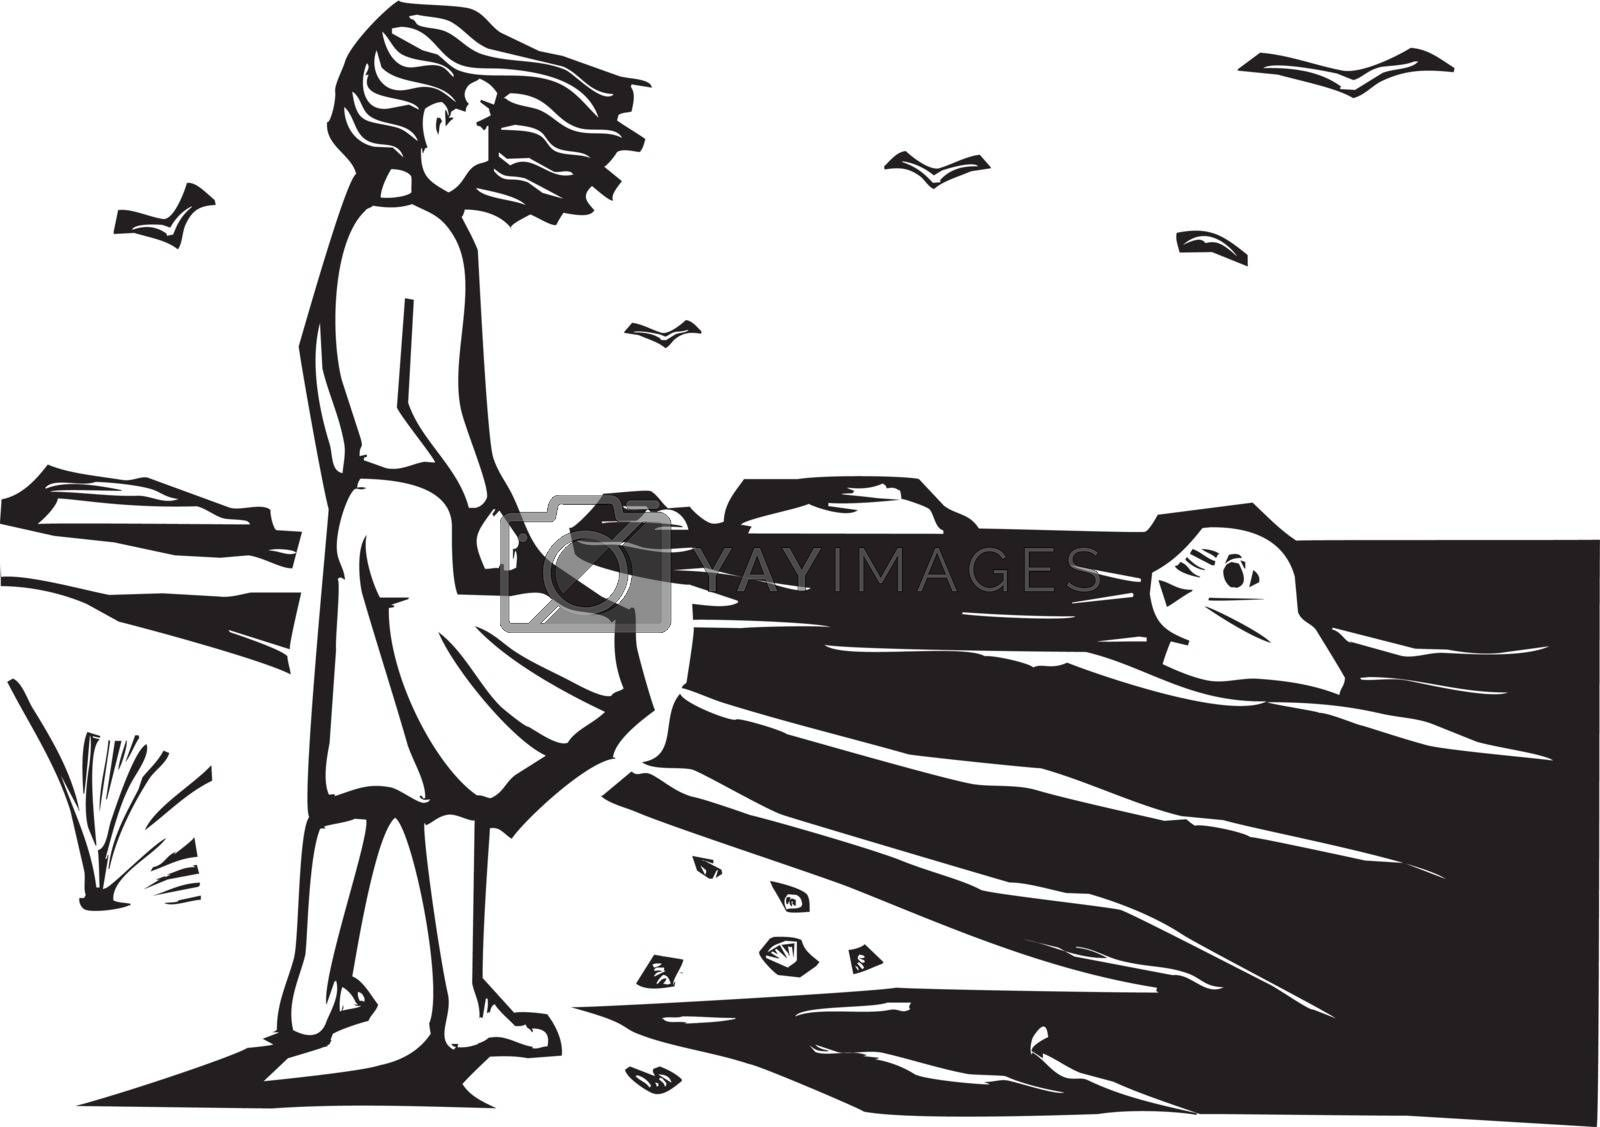 Woodcut style image of a girl on a beach watching a harbor seal in the waves.